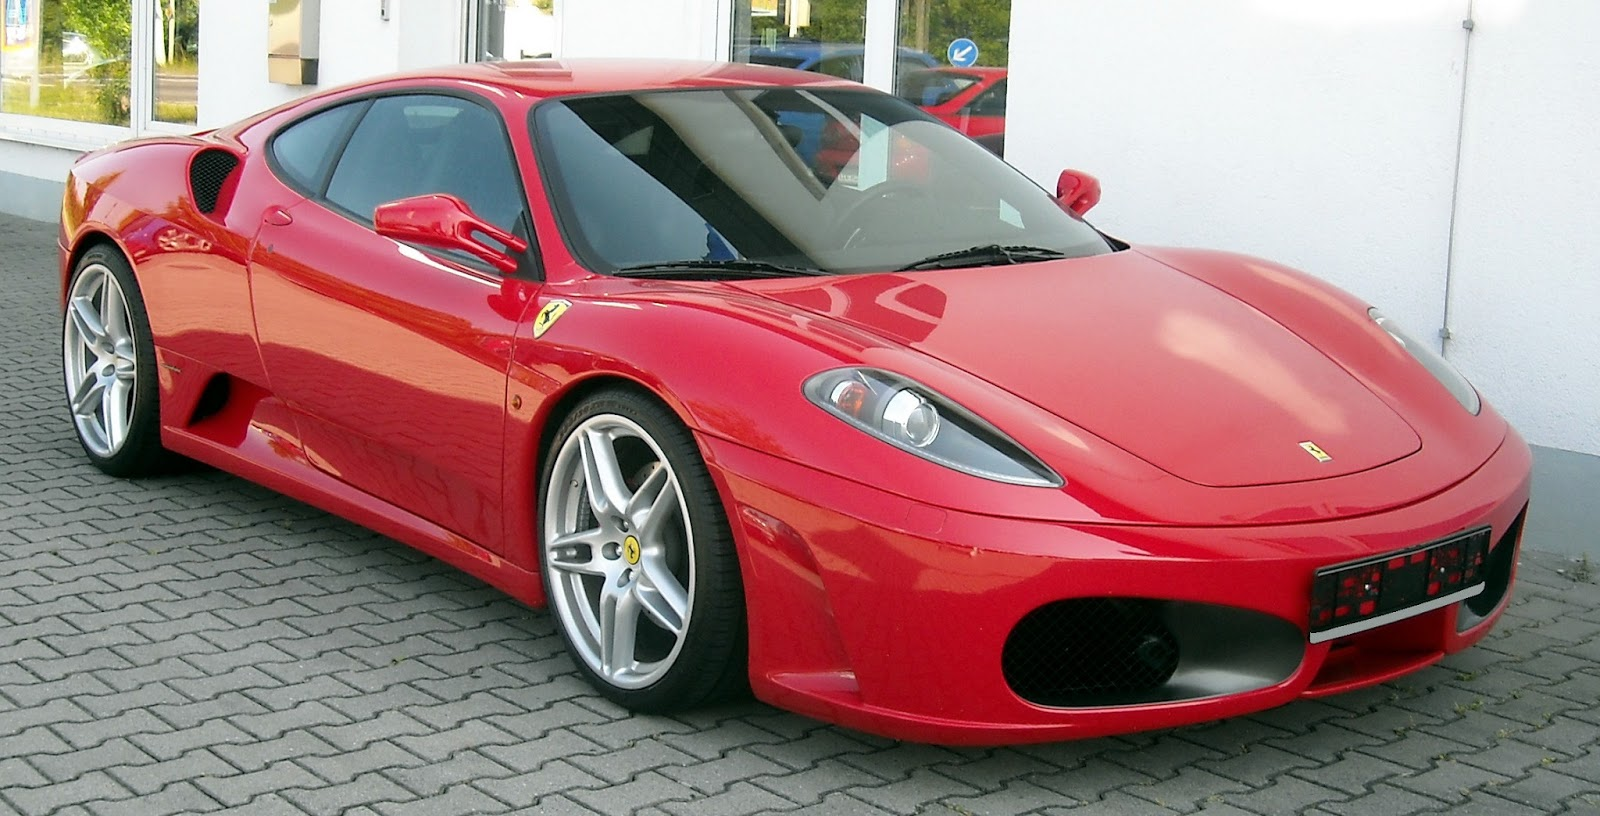 ferrari f430 for sale ferrari prestige cars. Black Bedroom Furniture Sets. Home Design Ideas